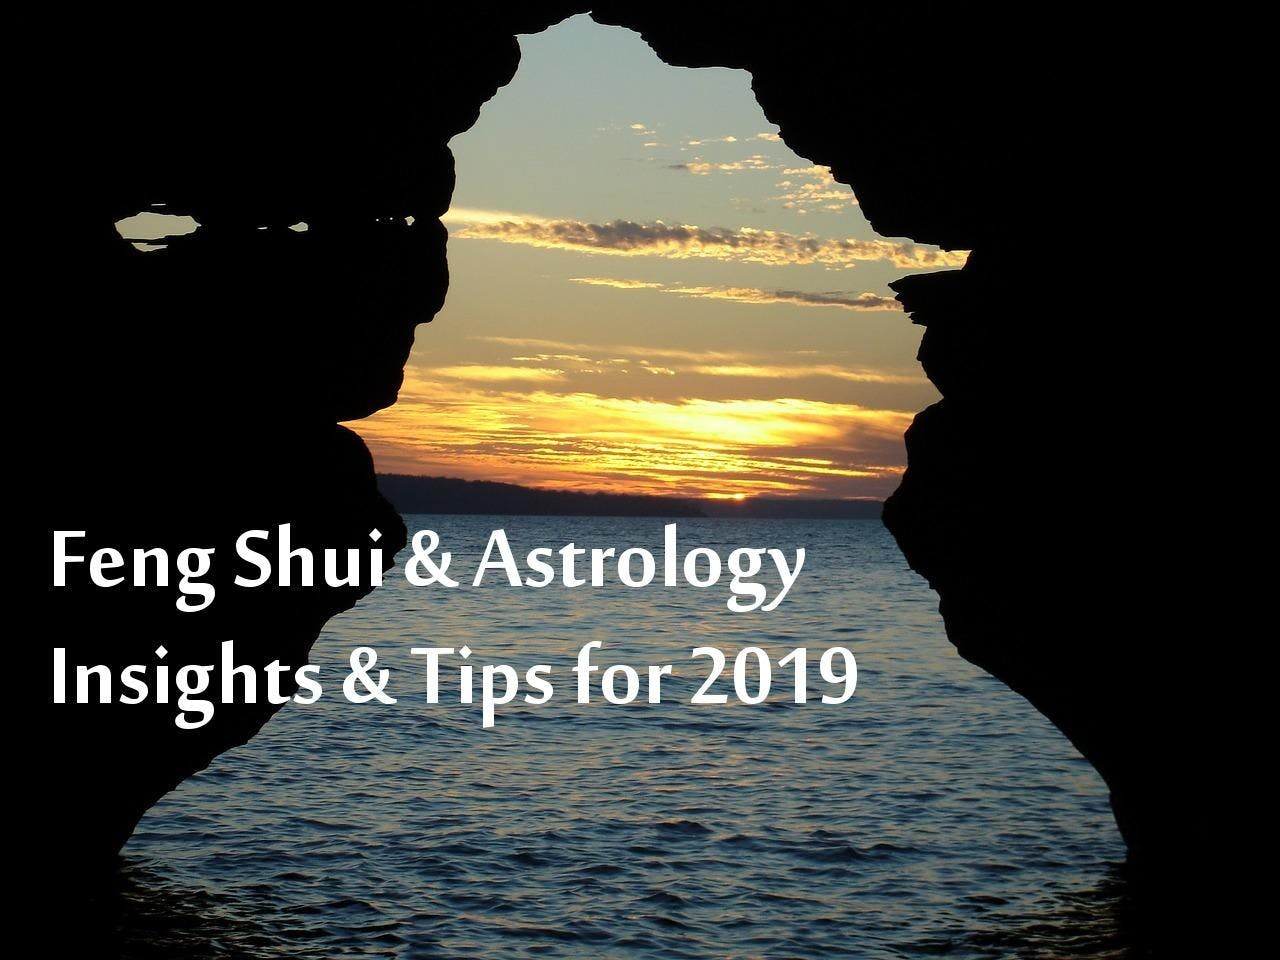 Feng Shui and Astrology Insights and Tips for